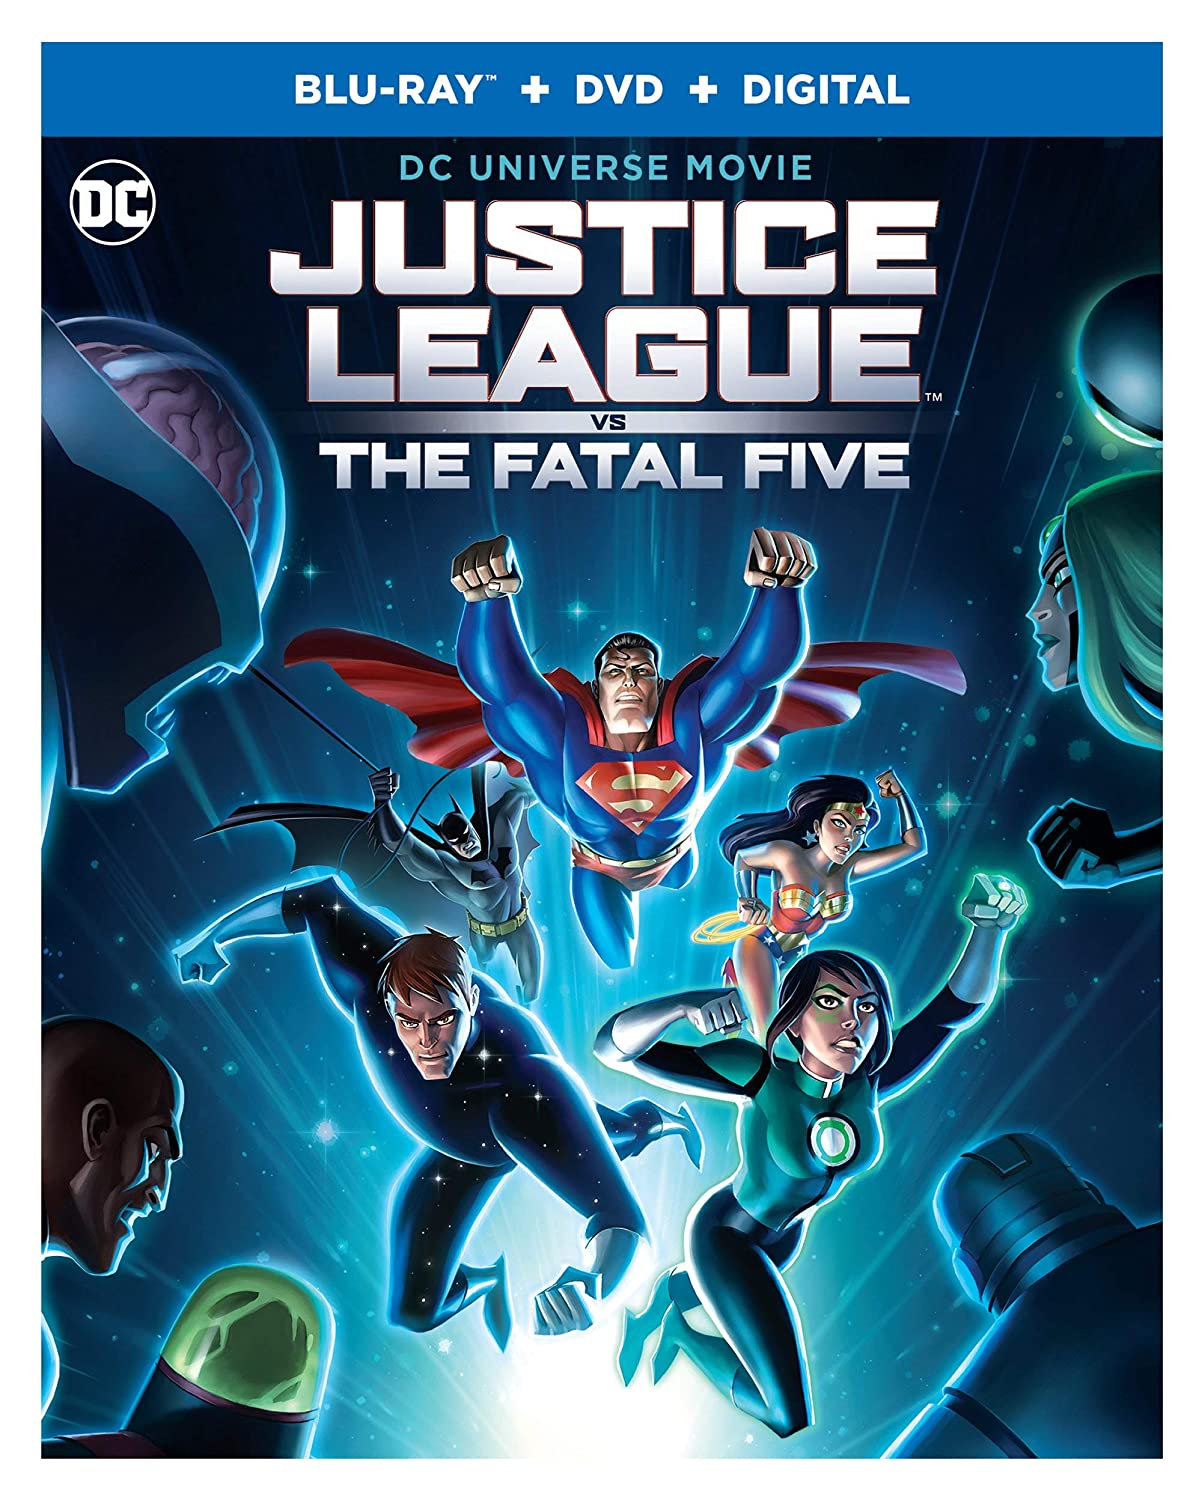 Amazon.com: Justice League vs. The Fatal Five (Blu-ray ...